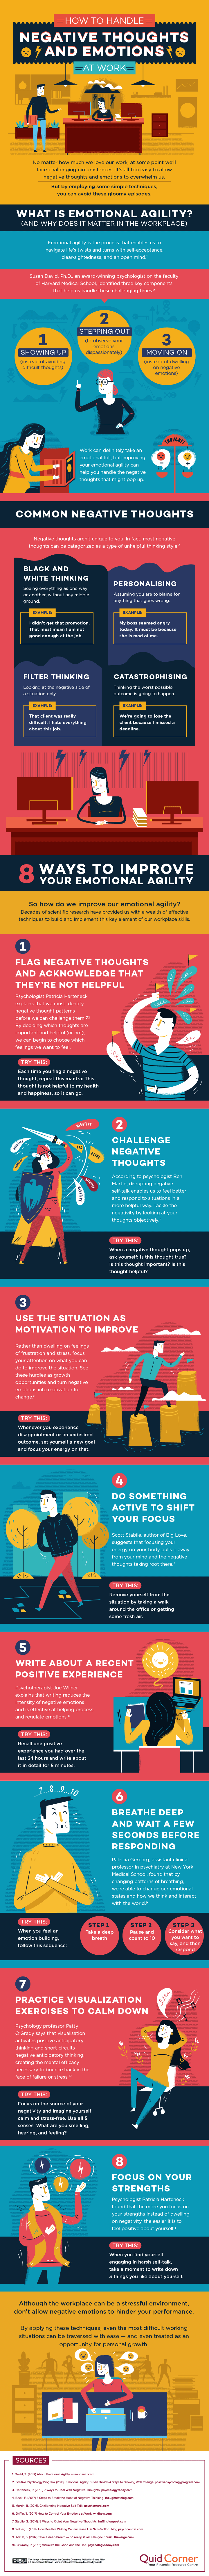 How to Deal with Negative Thoughts in The Workplace